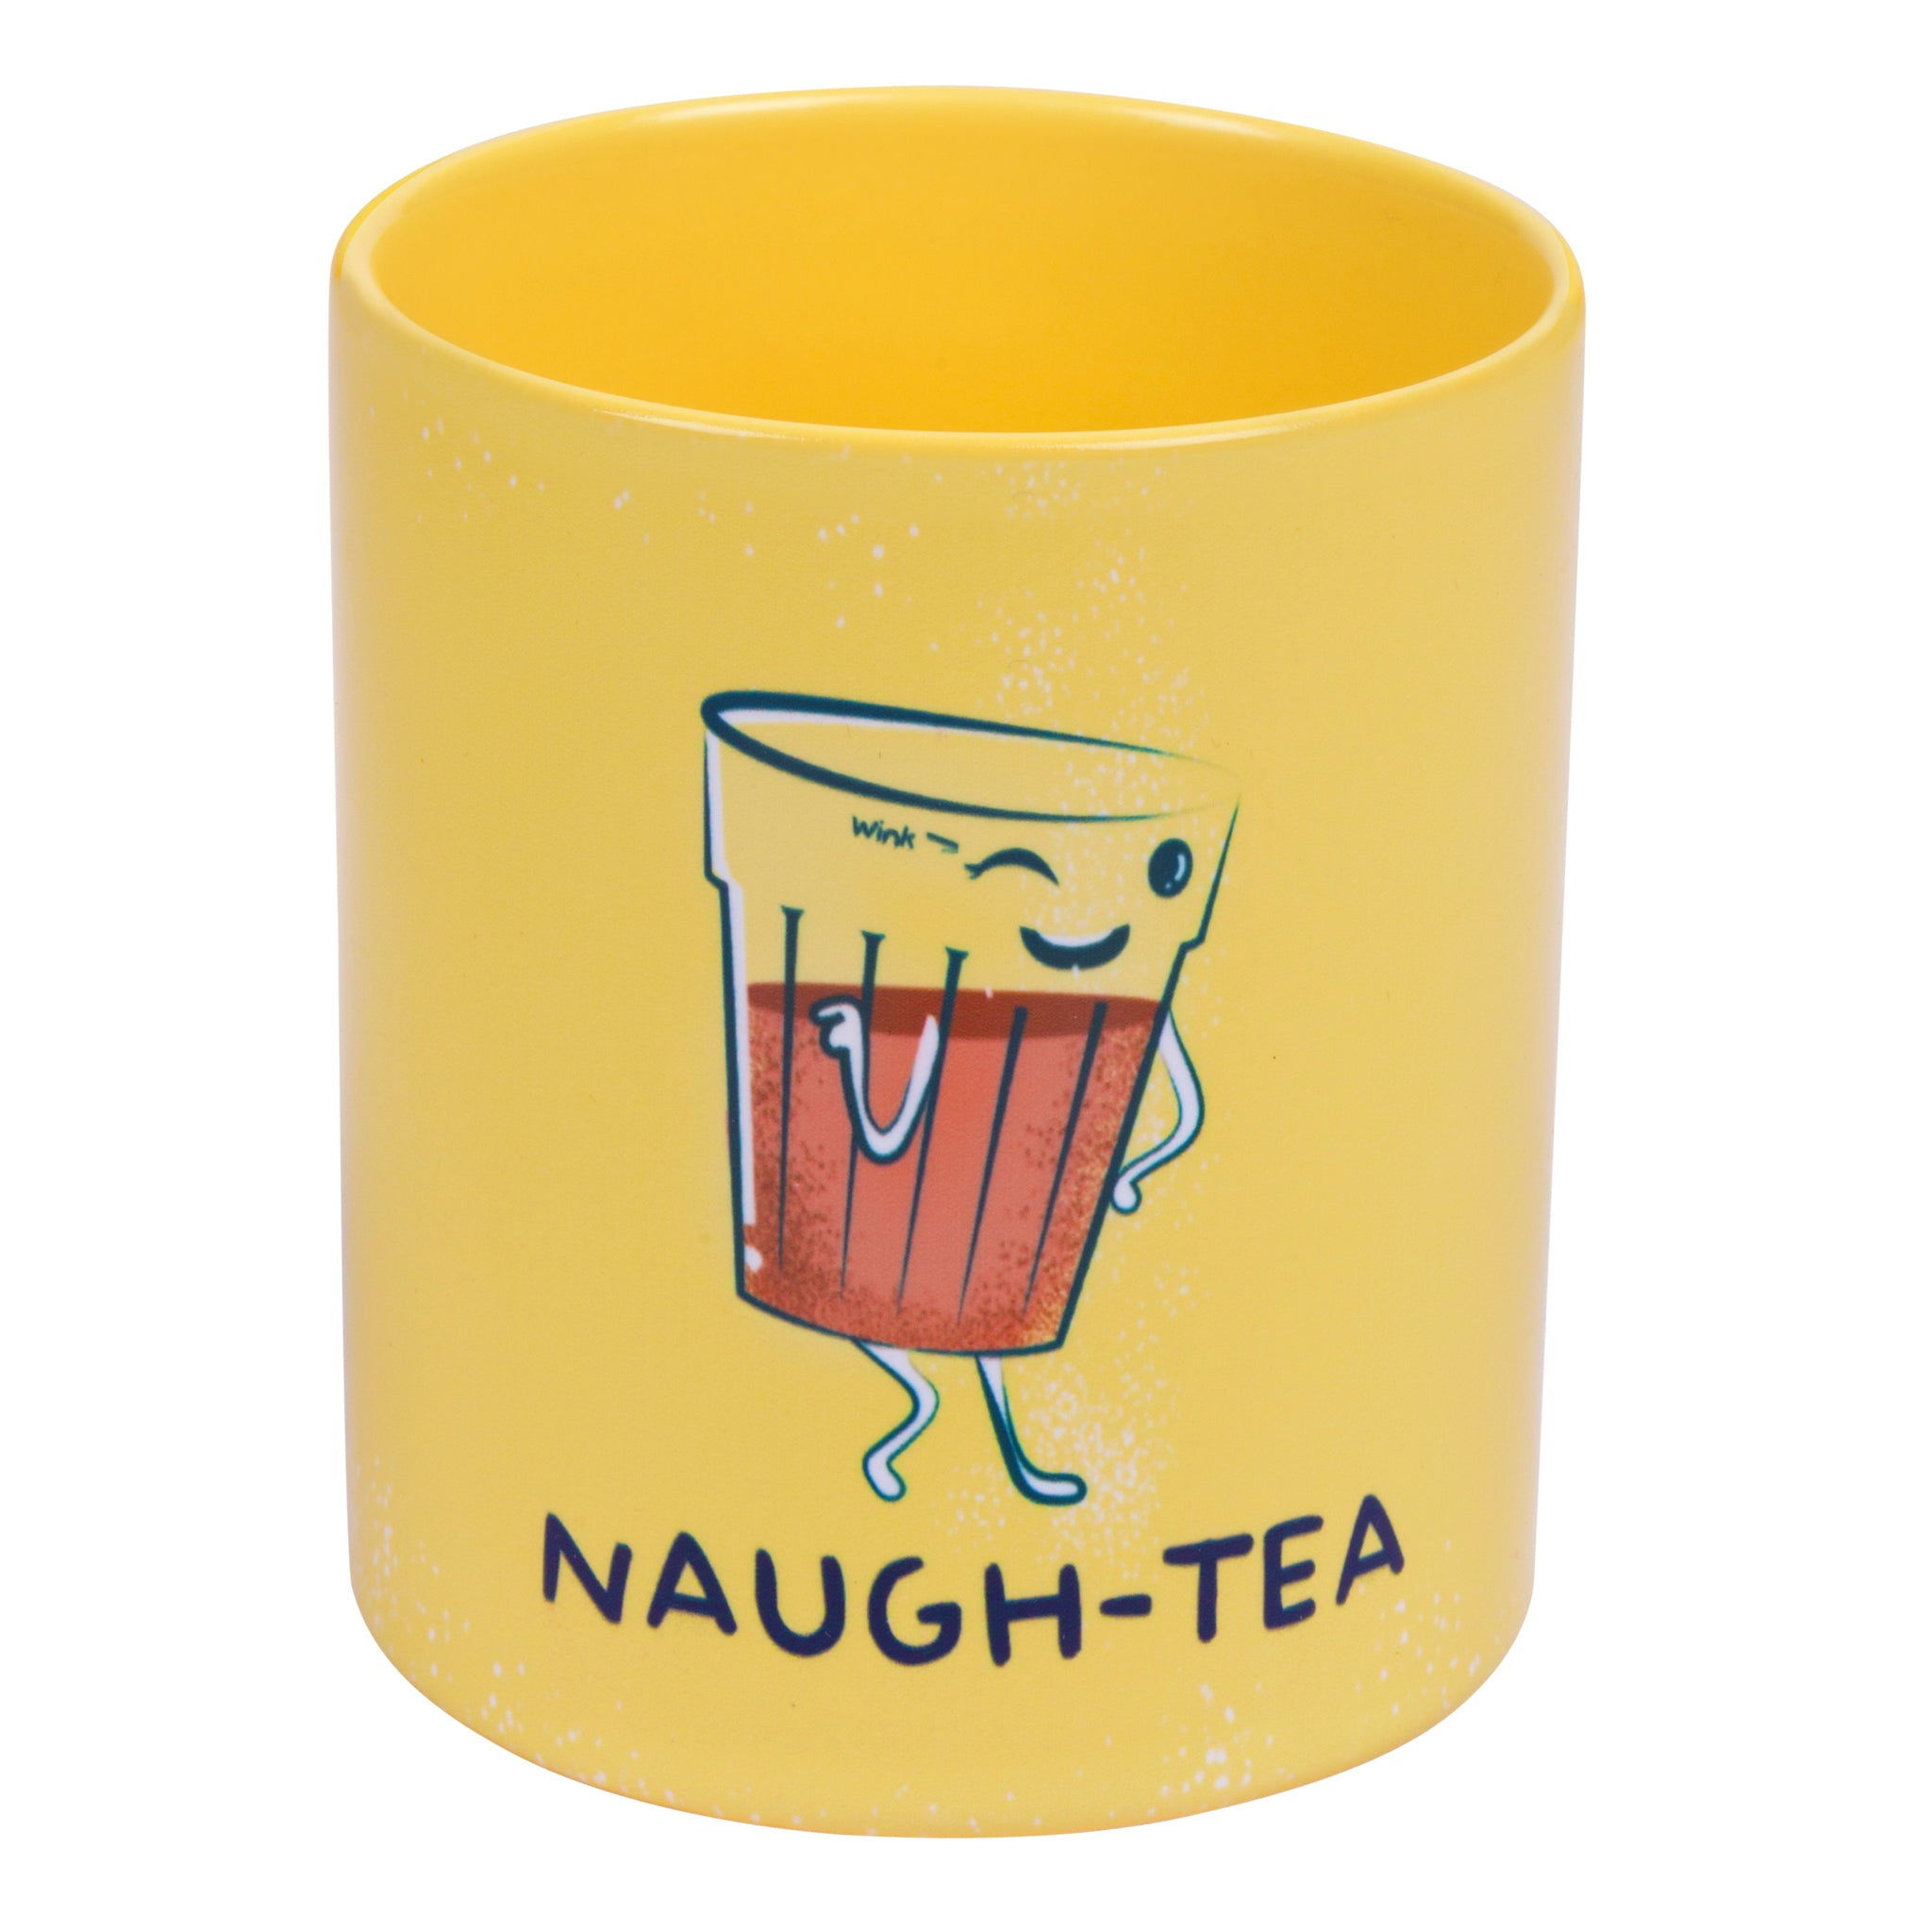 'Naughty' Coffee Mug